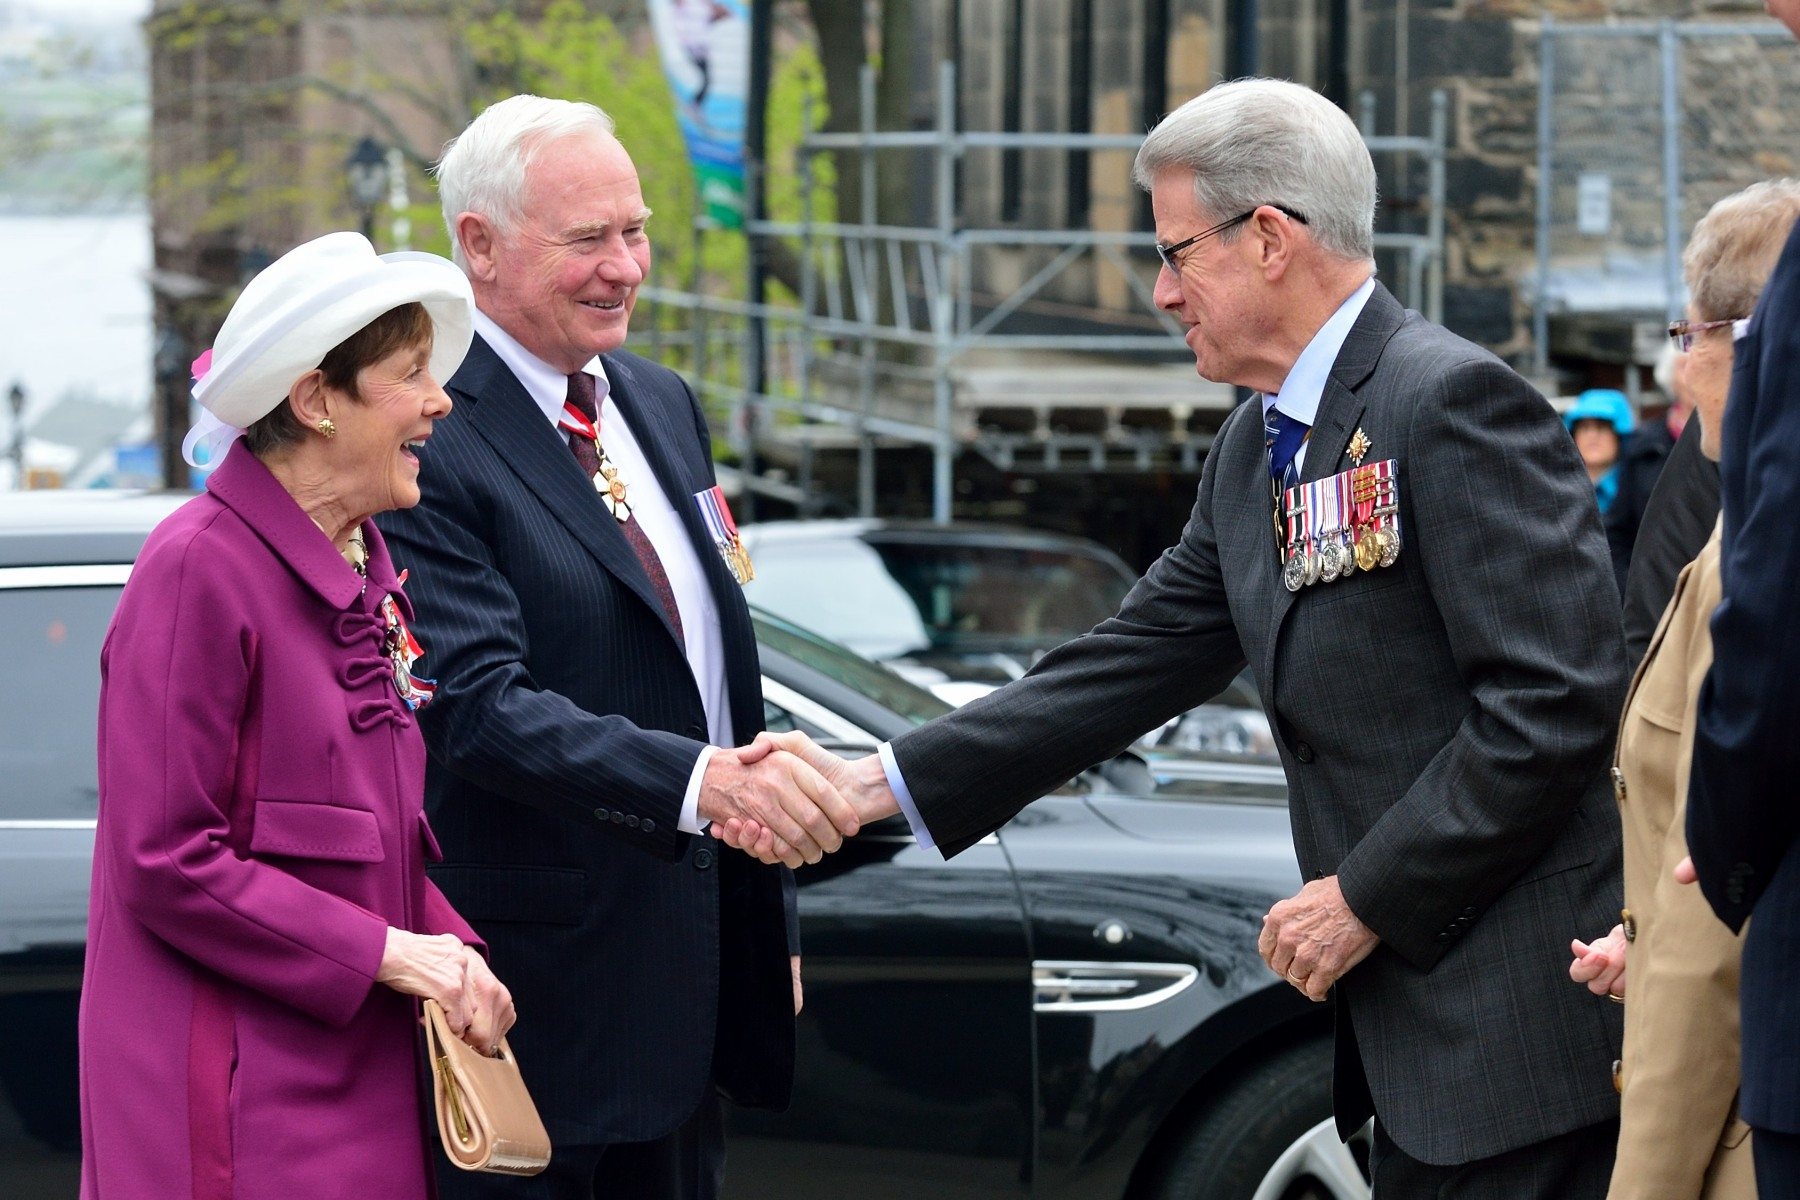 Their Excellencies were greeted by His Honour Brigadier-General The Honourable J.J. Grant (Ret'd), Lieutenant Governor of Nova Scotia, upon their arrival at Grand Parade, in Halifax, for the official welcoming ceremony.